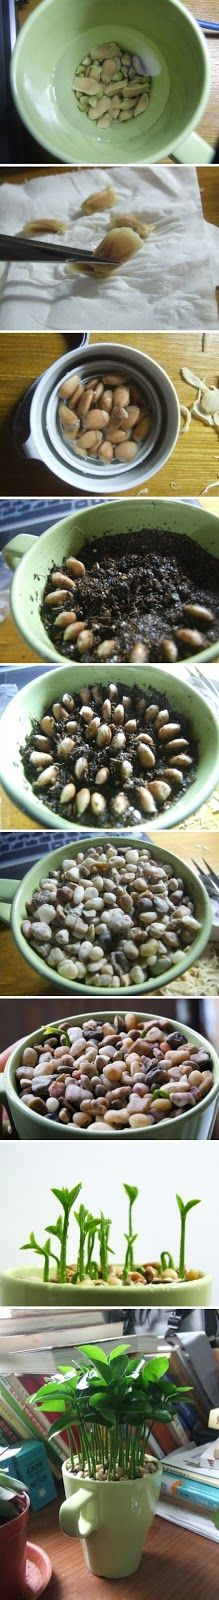 I want to try to grow some lemon seeds.  Must remember that they have to be kept moist, even before you plant them!